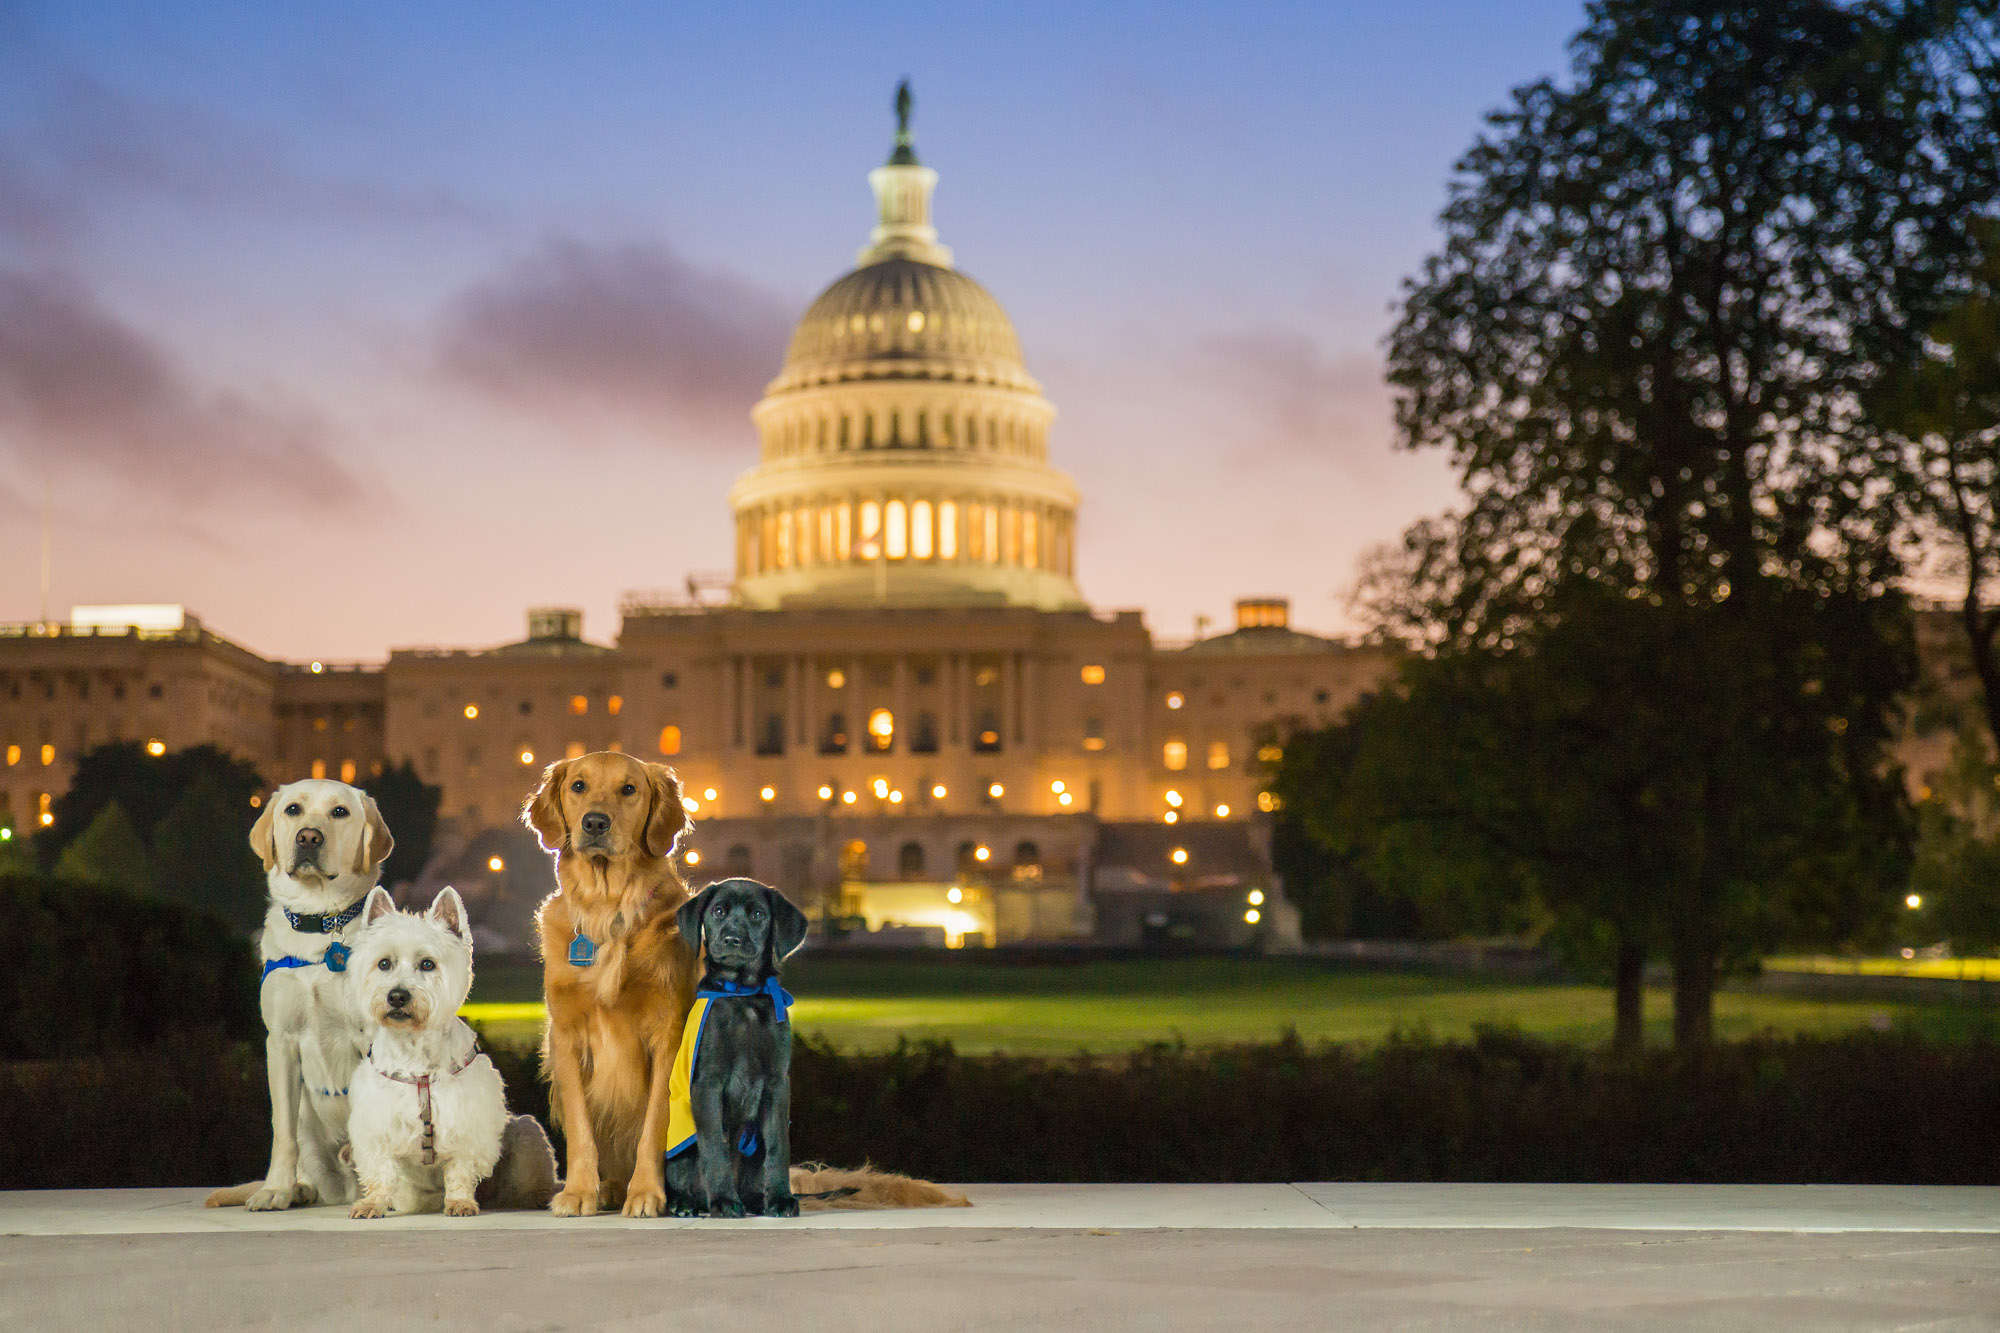 Dogs in front of US Capitol Building in Washington DC at Sunrise